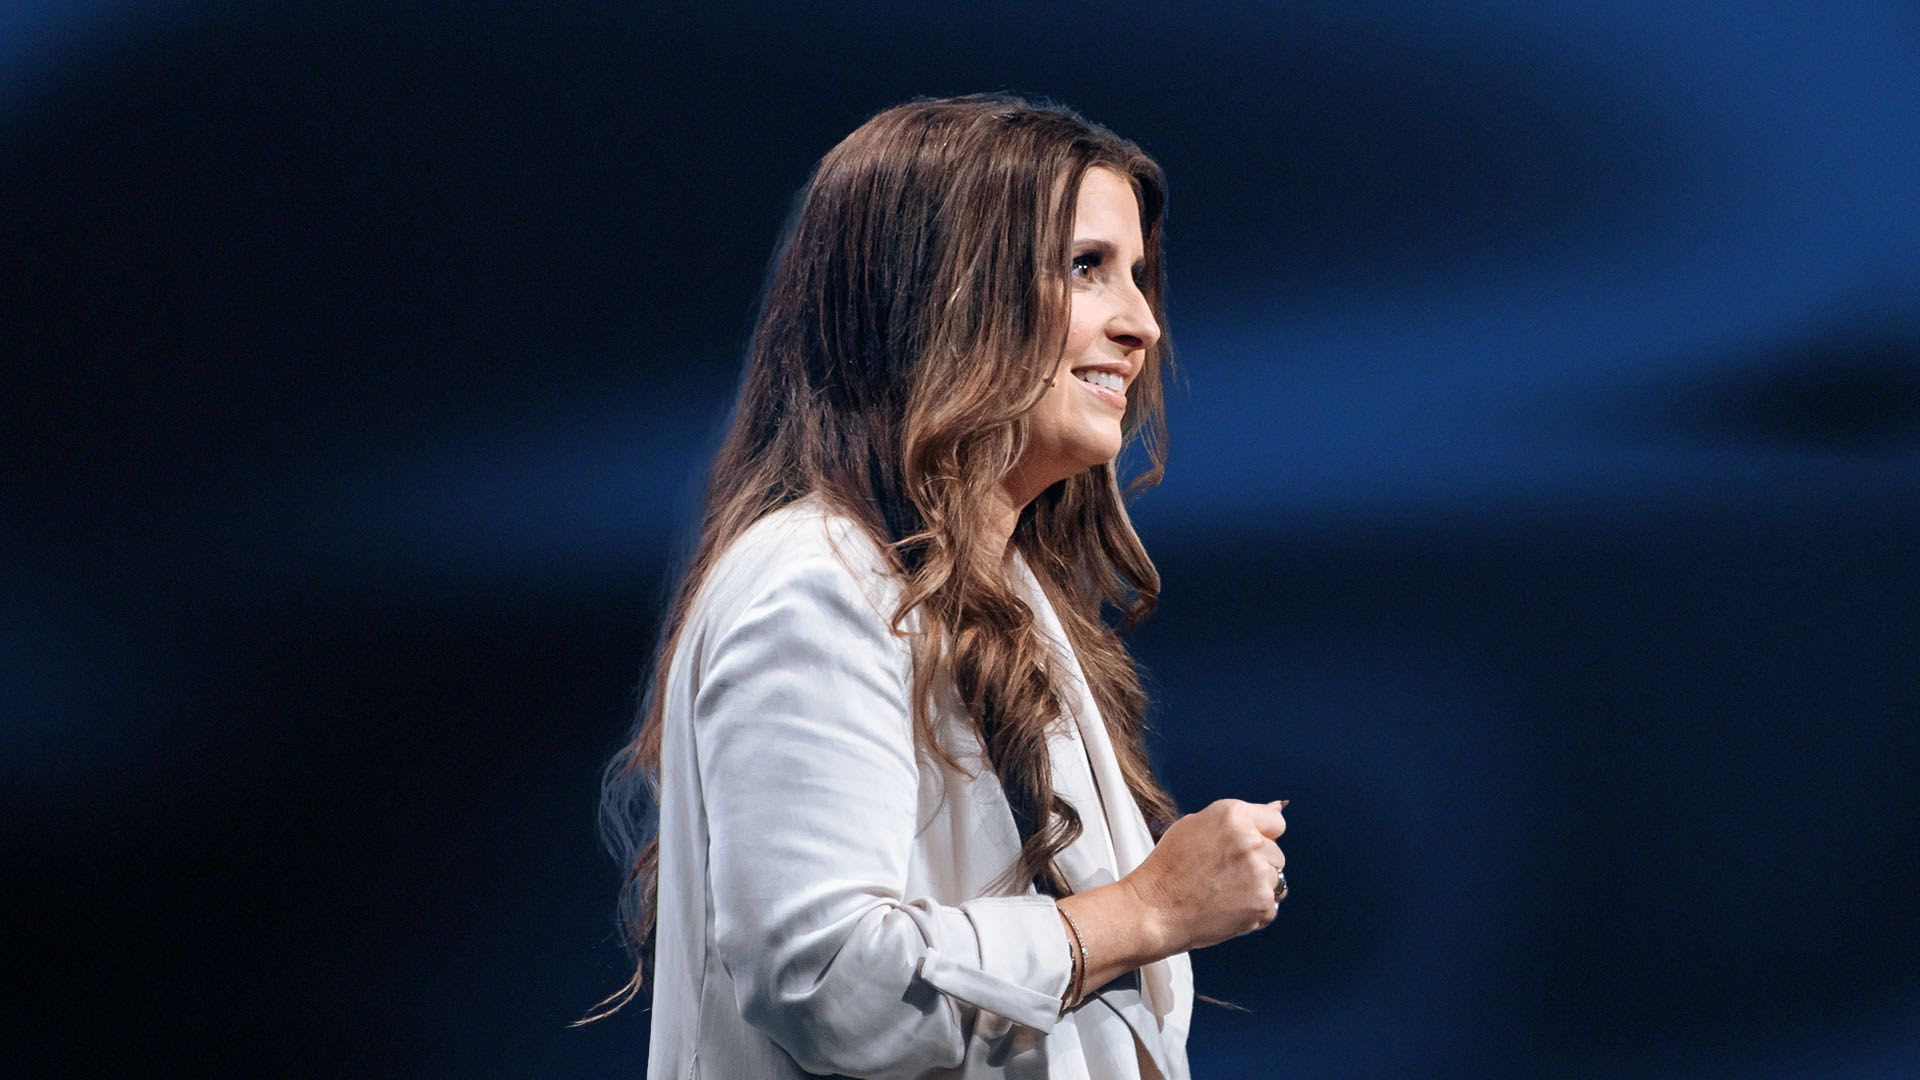 Holly Furtick preaching the sermon You Were Not Meant To Do This Alone